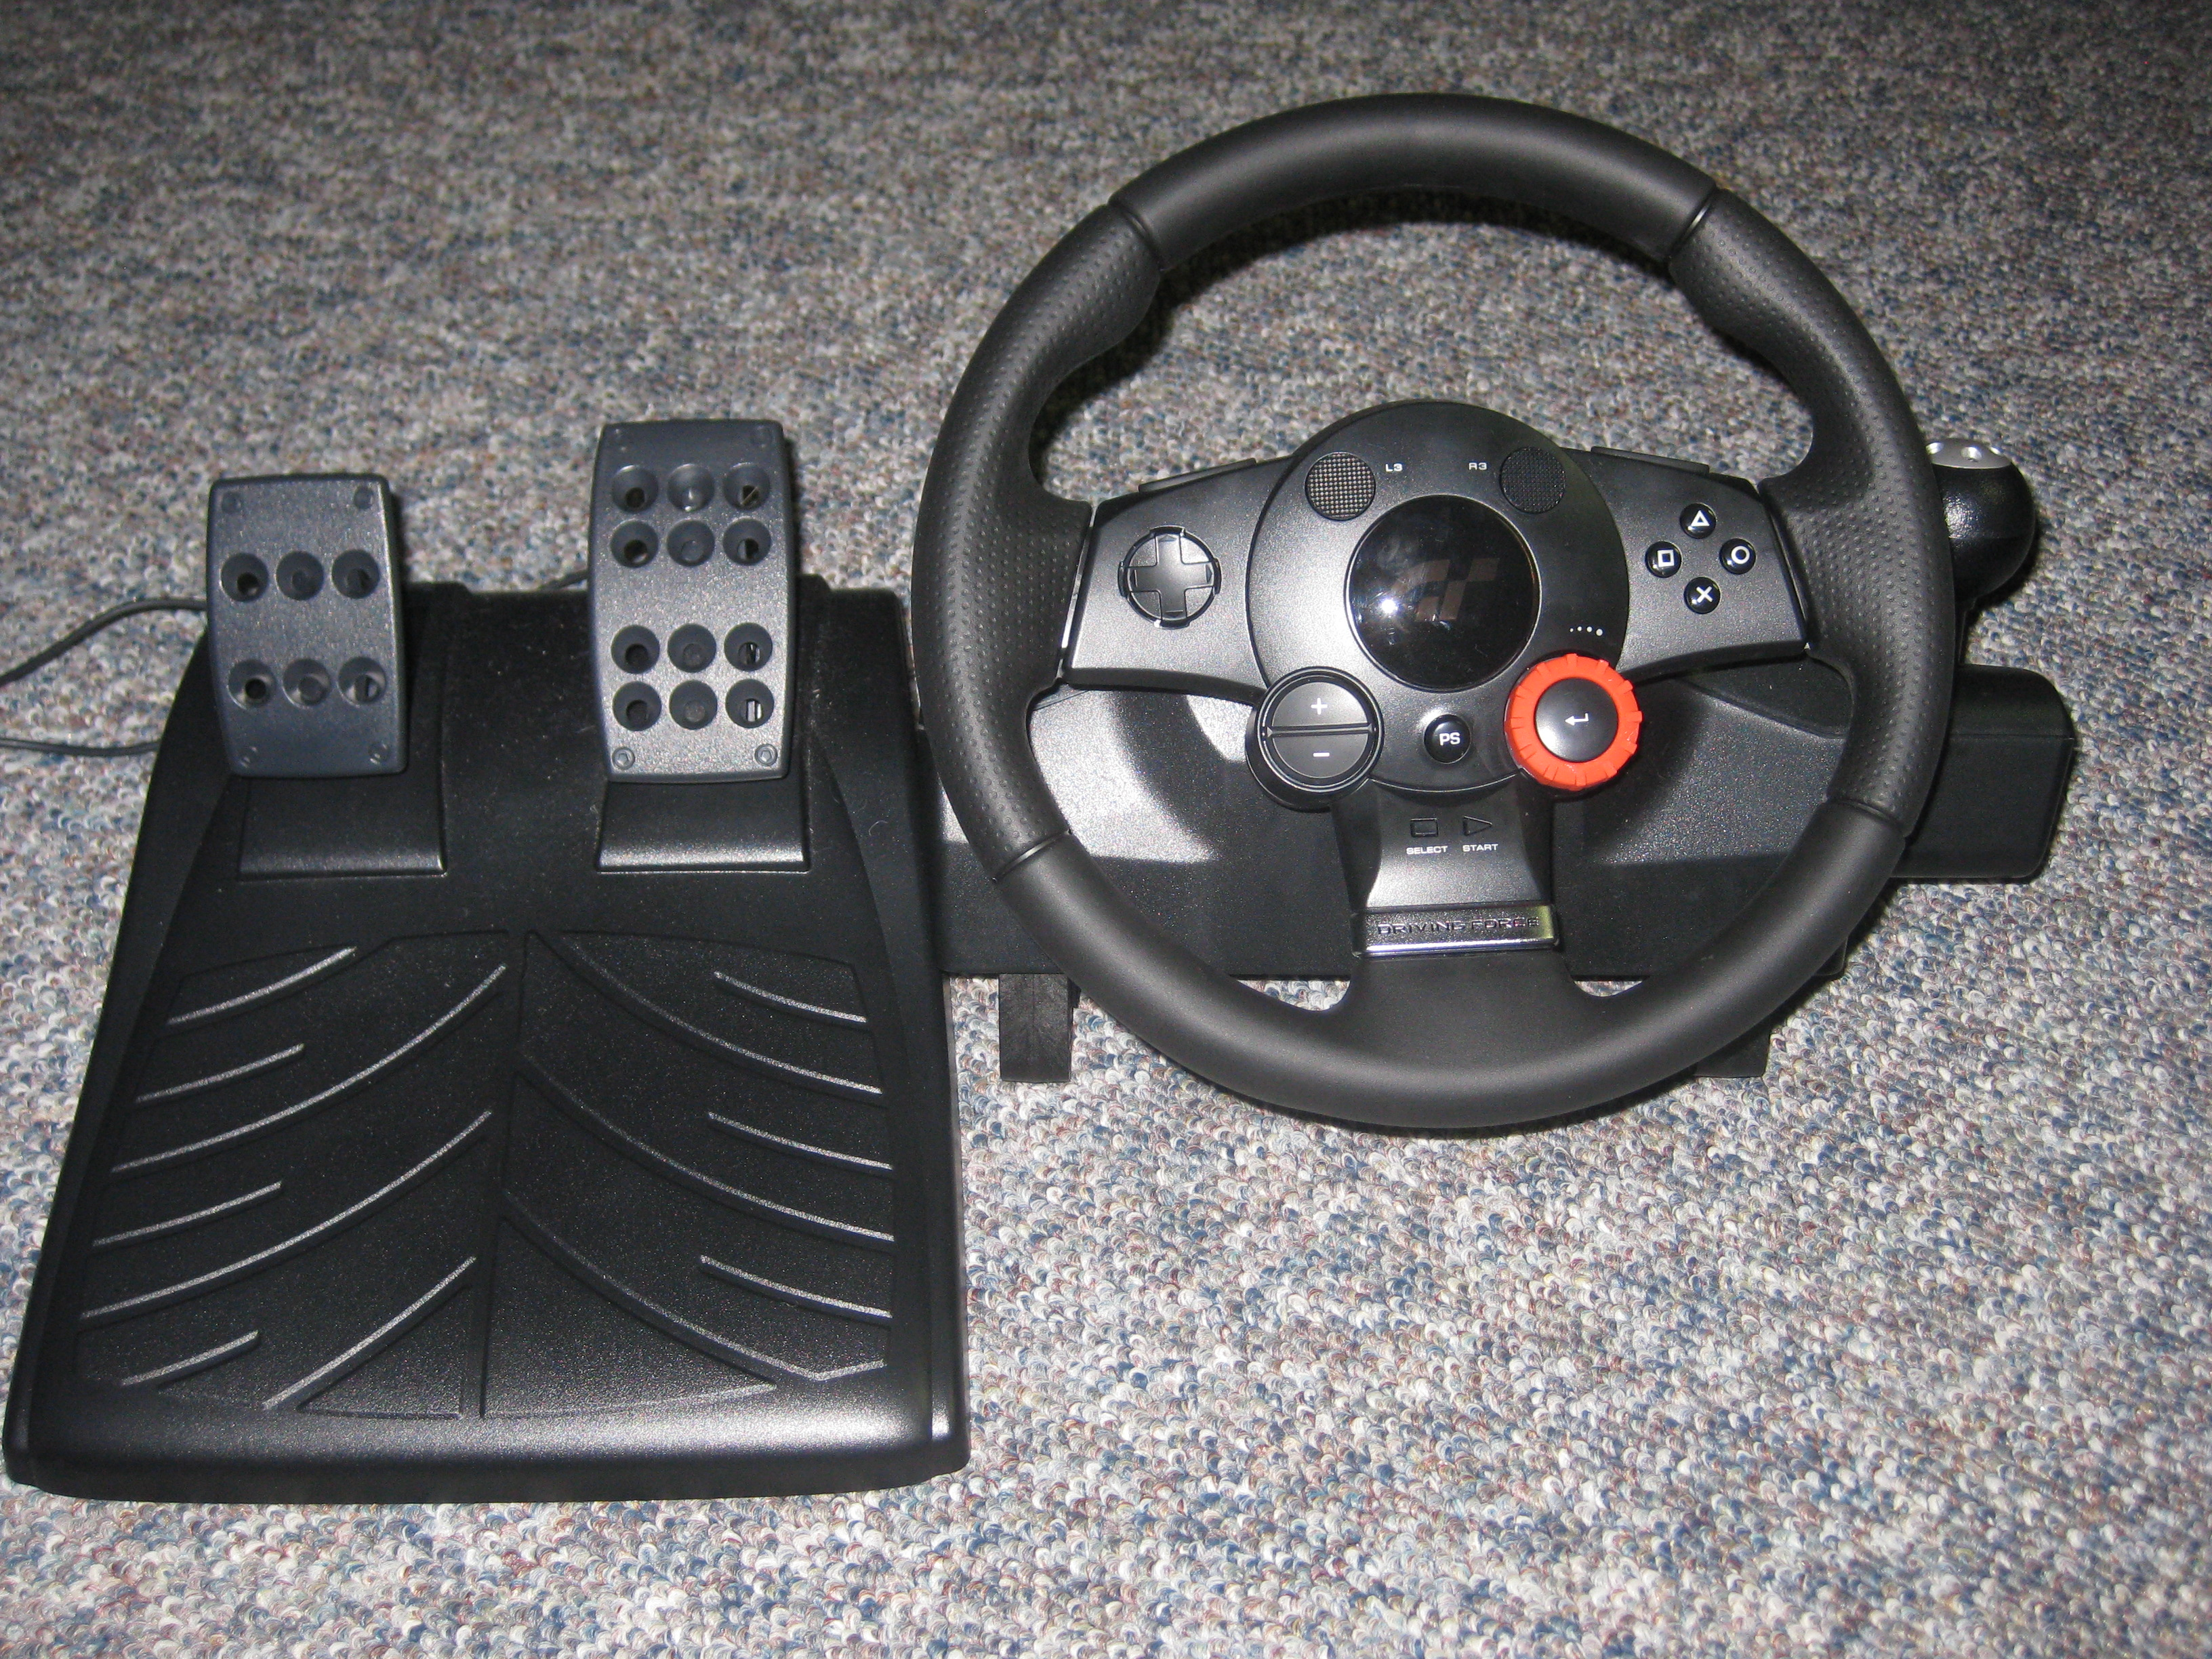 Logitech Driving Force GT - Wikipedia